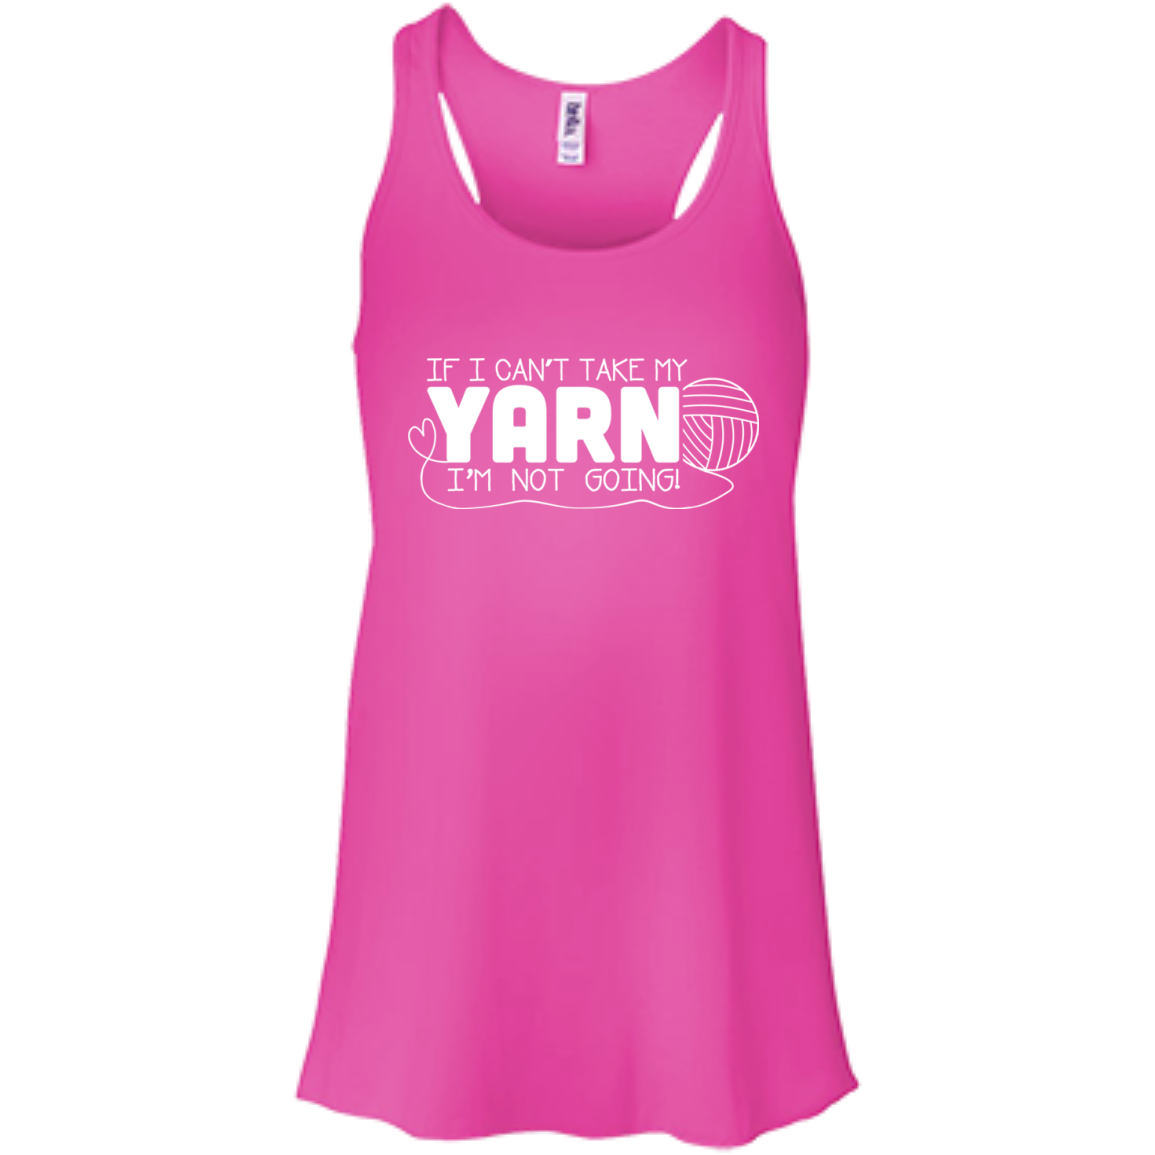 If I Cant Take My Yarn Not Going Flowy Racerback Tanks